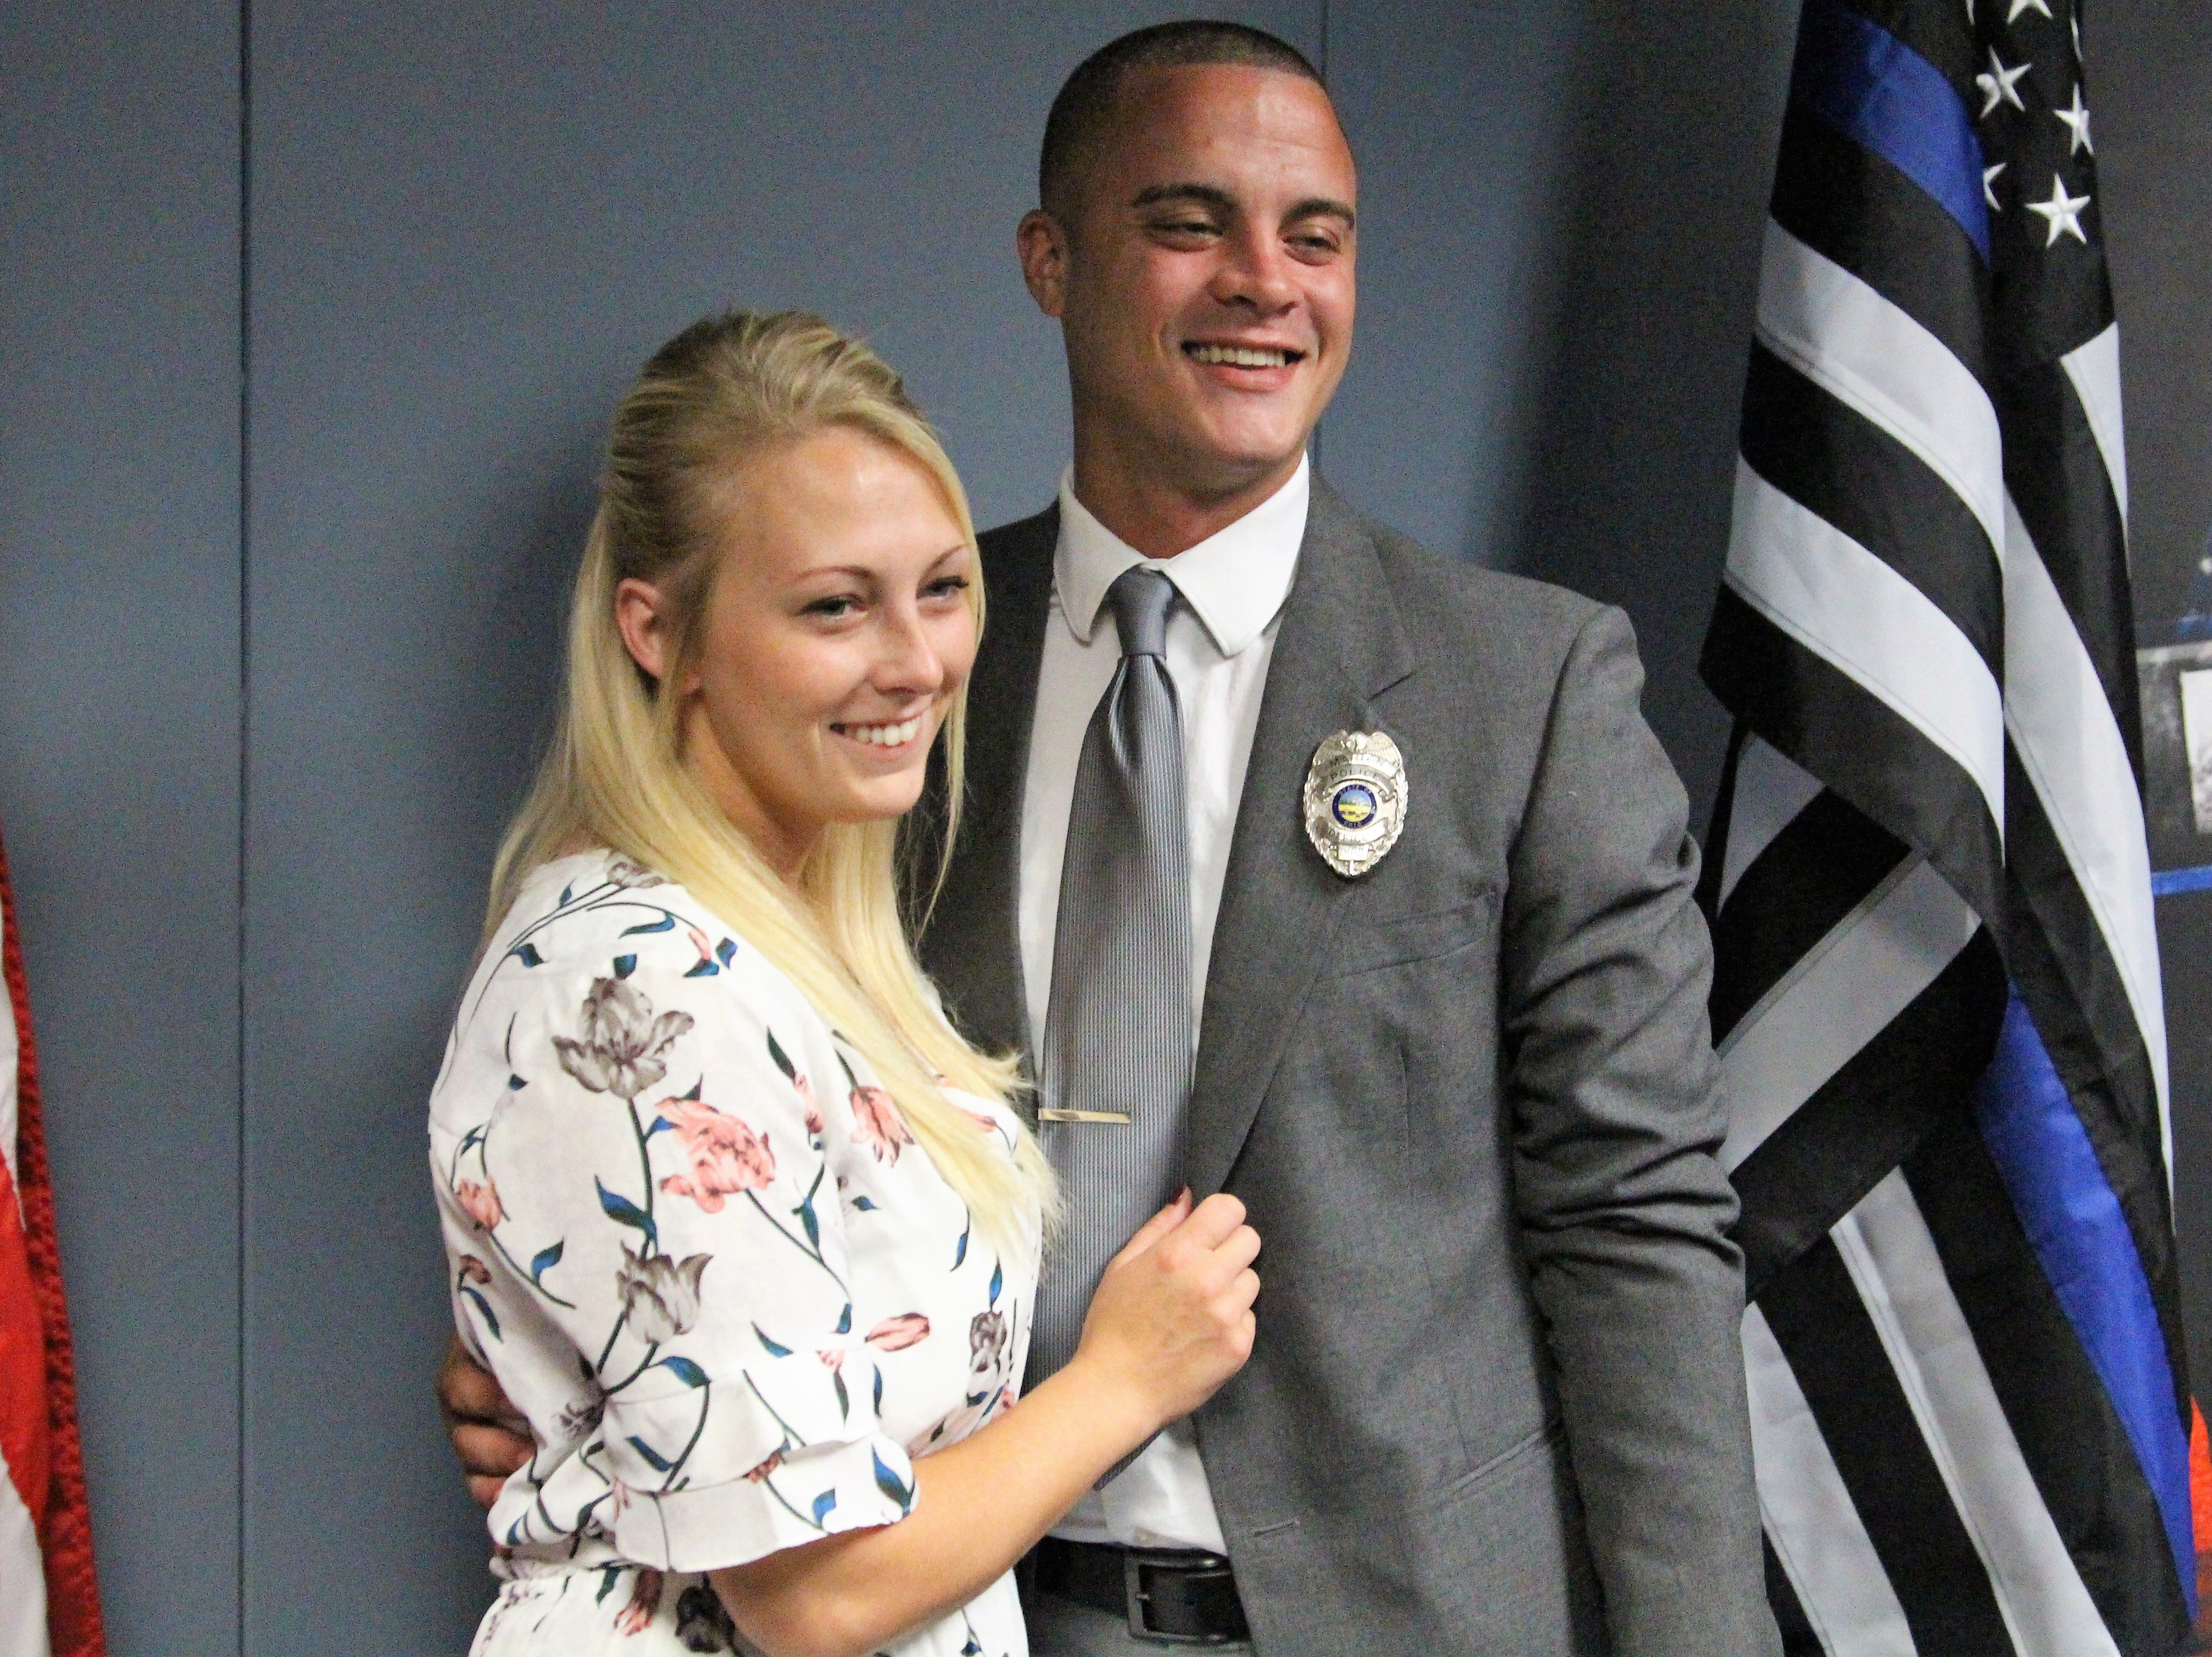 New Marion patrol officer Sebastian Walker poses with his wife Courtney after being issued the oath of office on Monday.